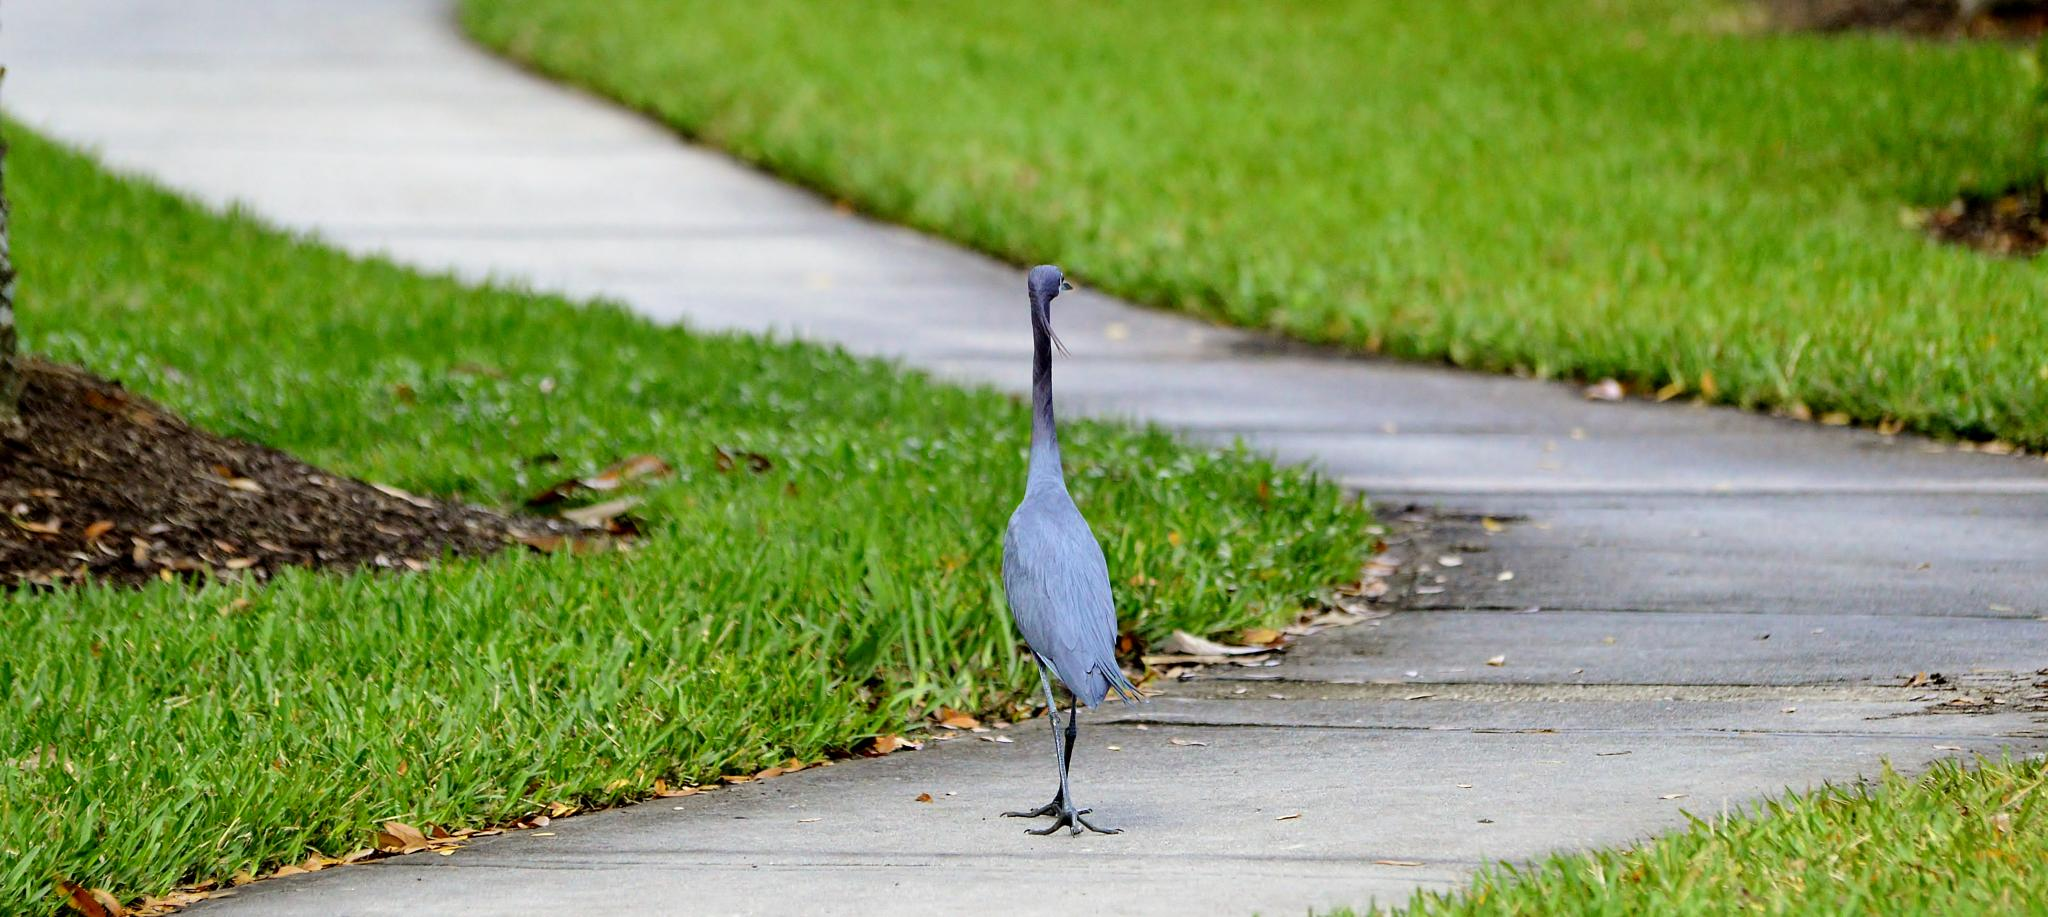 Little Blue Heron, Hunting for Anole Lizards  by jamie.dorton